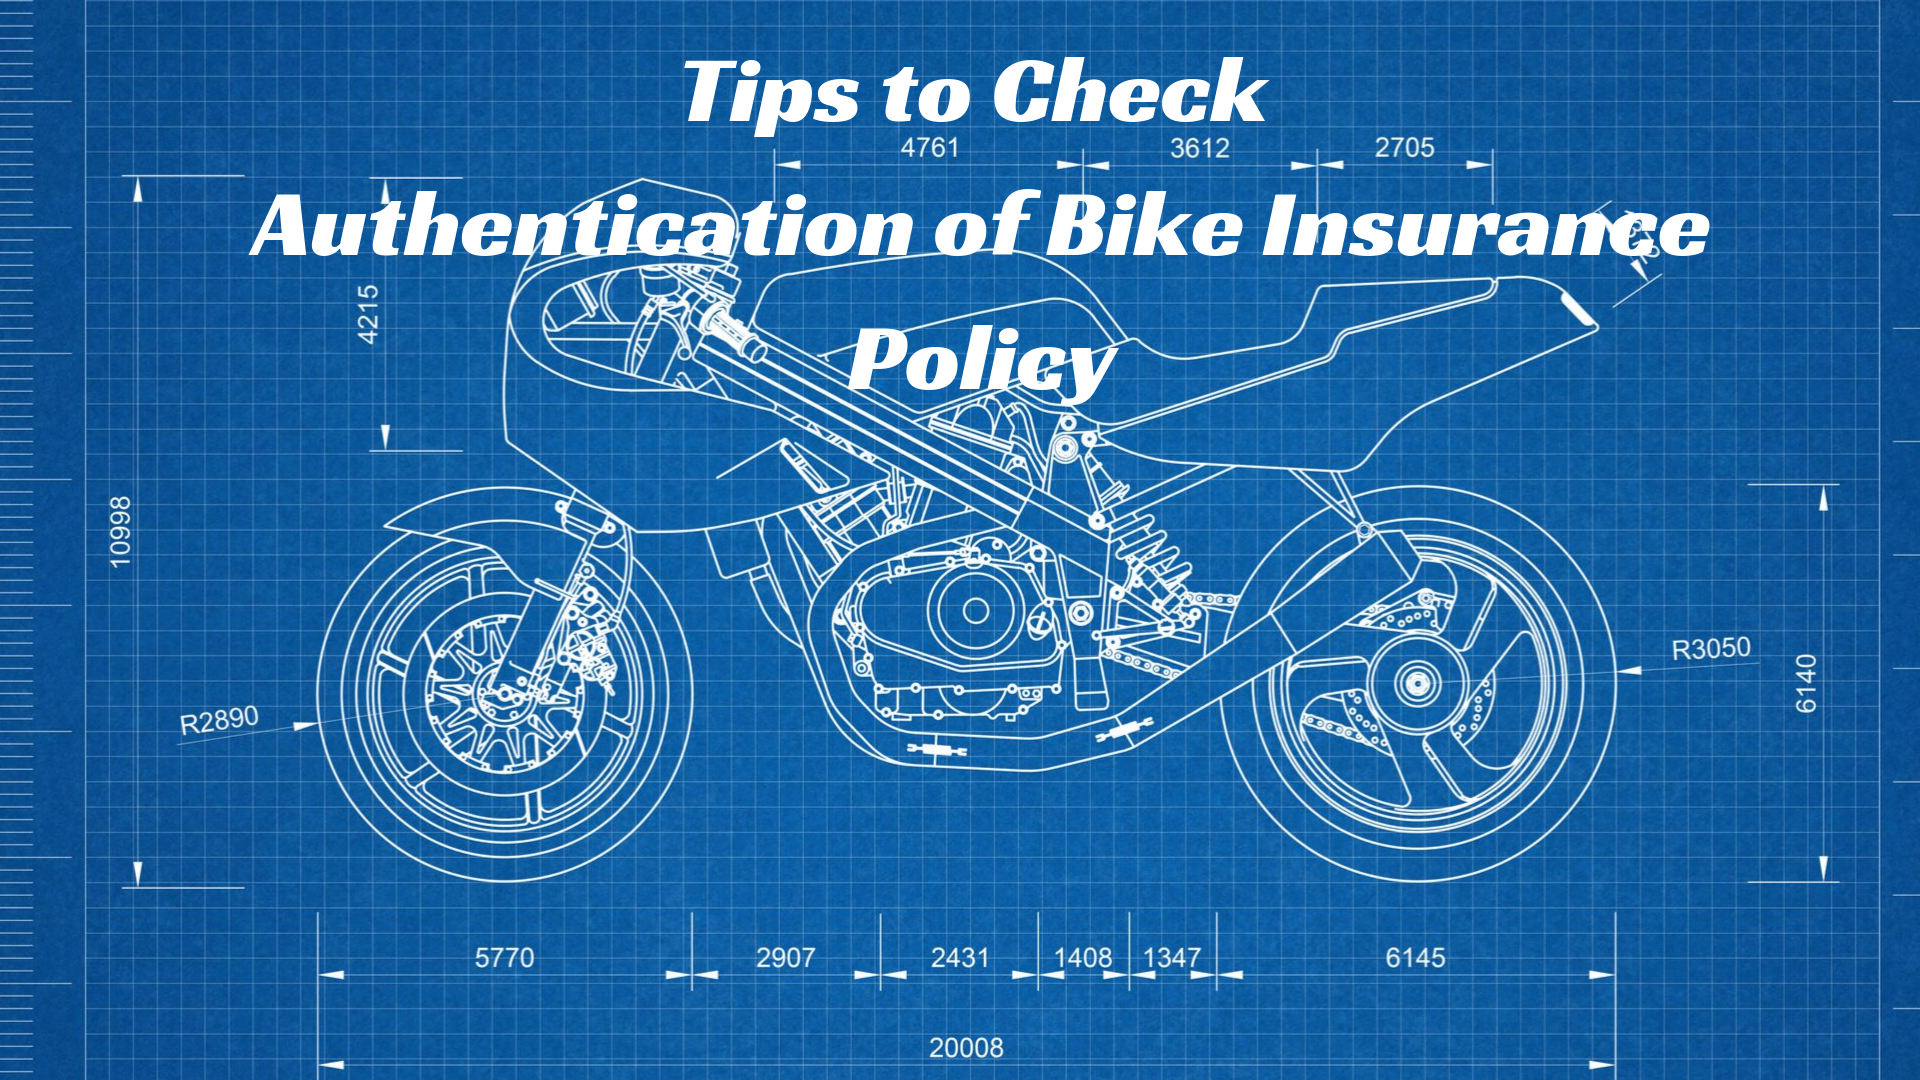 Top 8 Tips you must check for authentication of Bike Insurance Policy